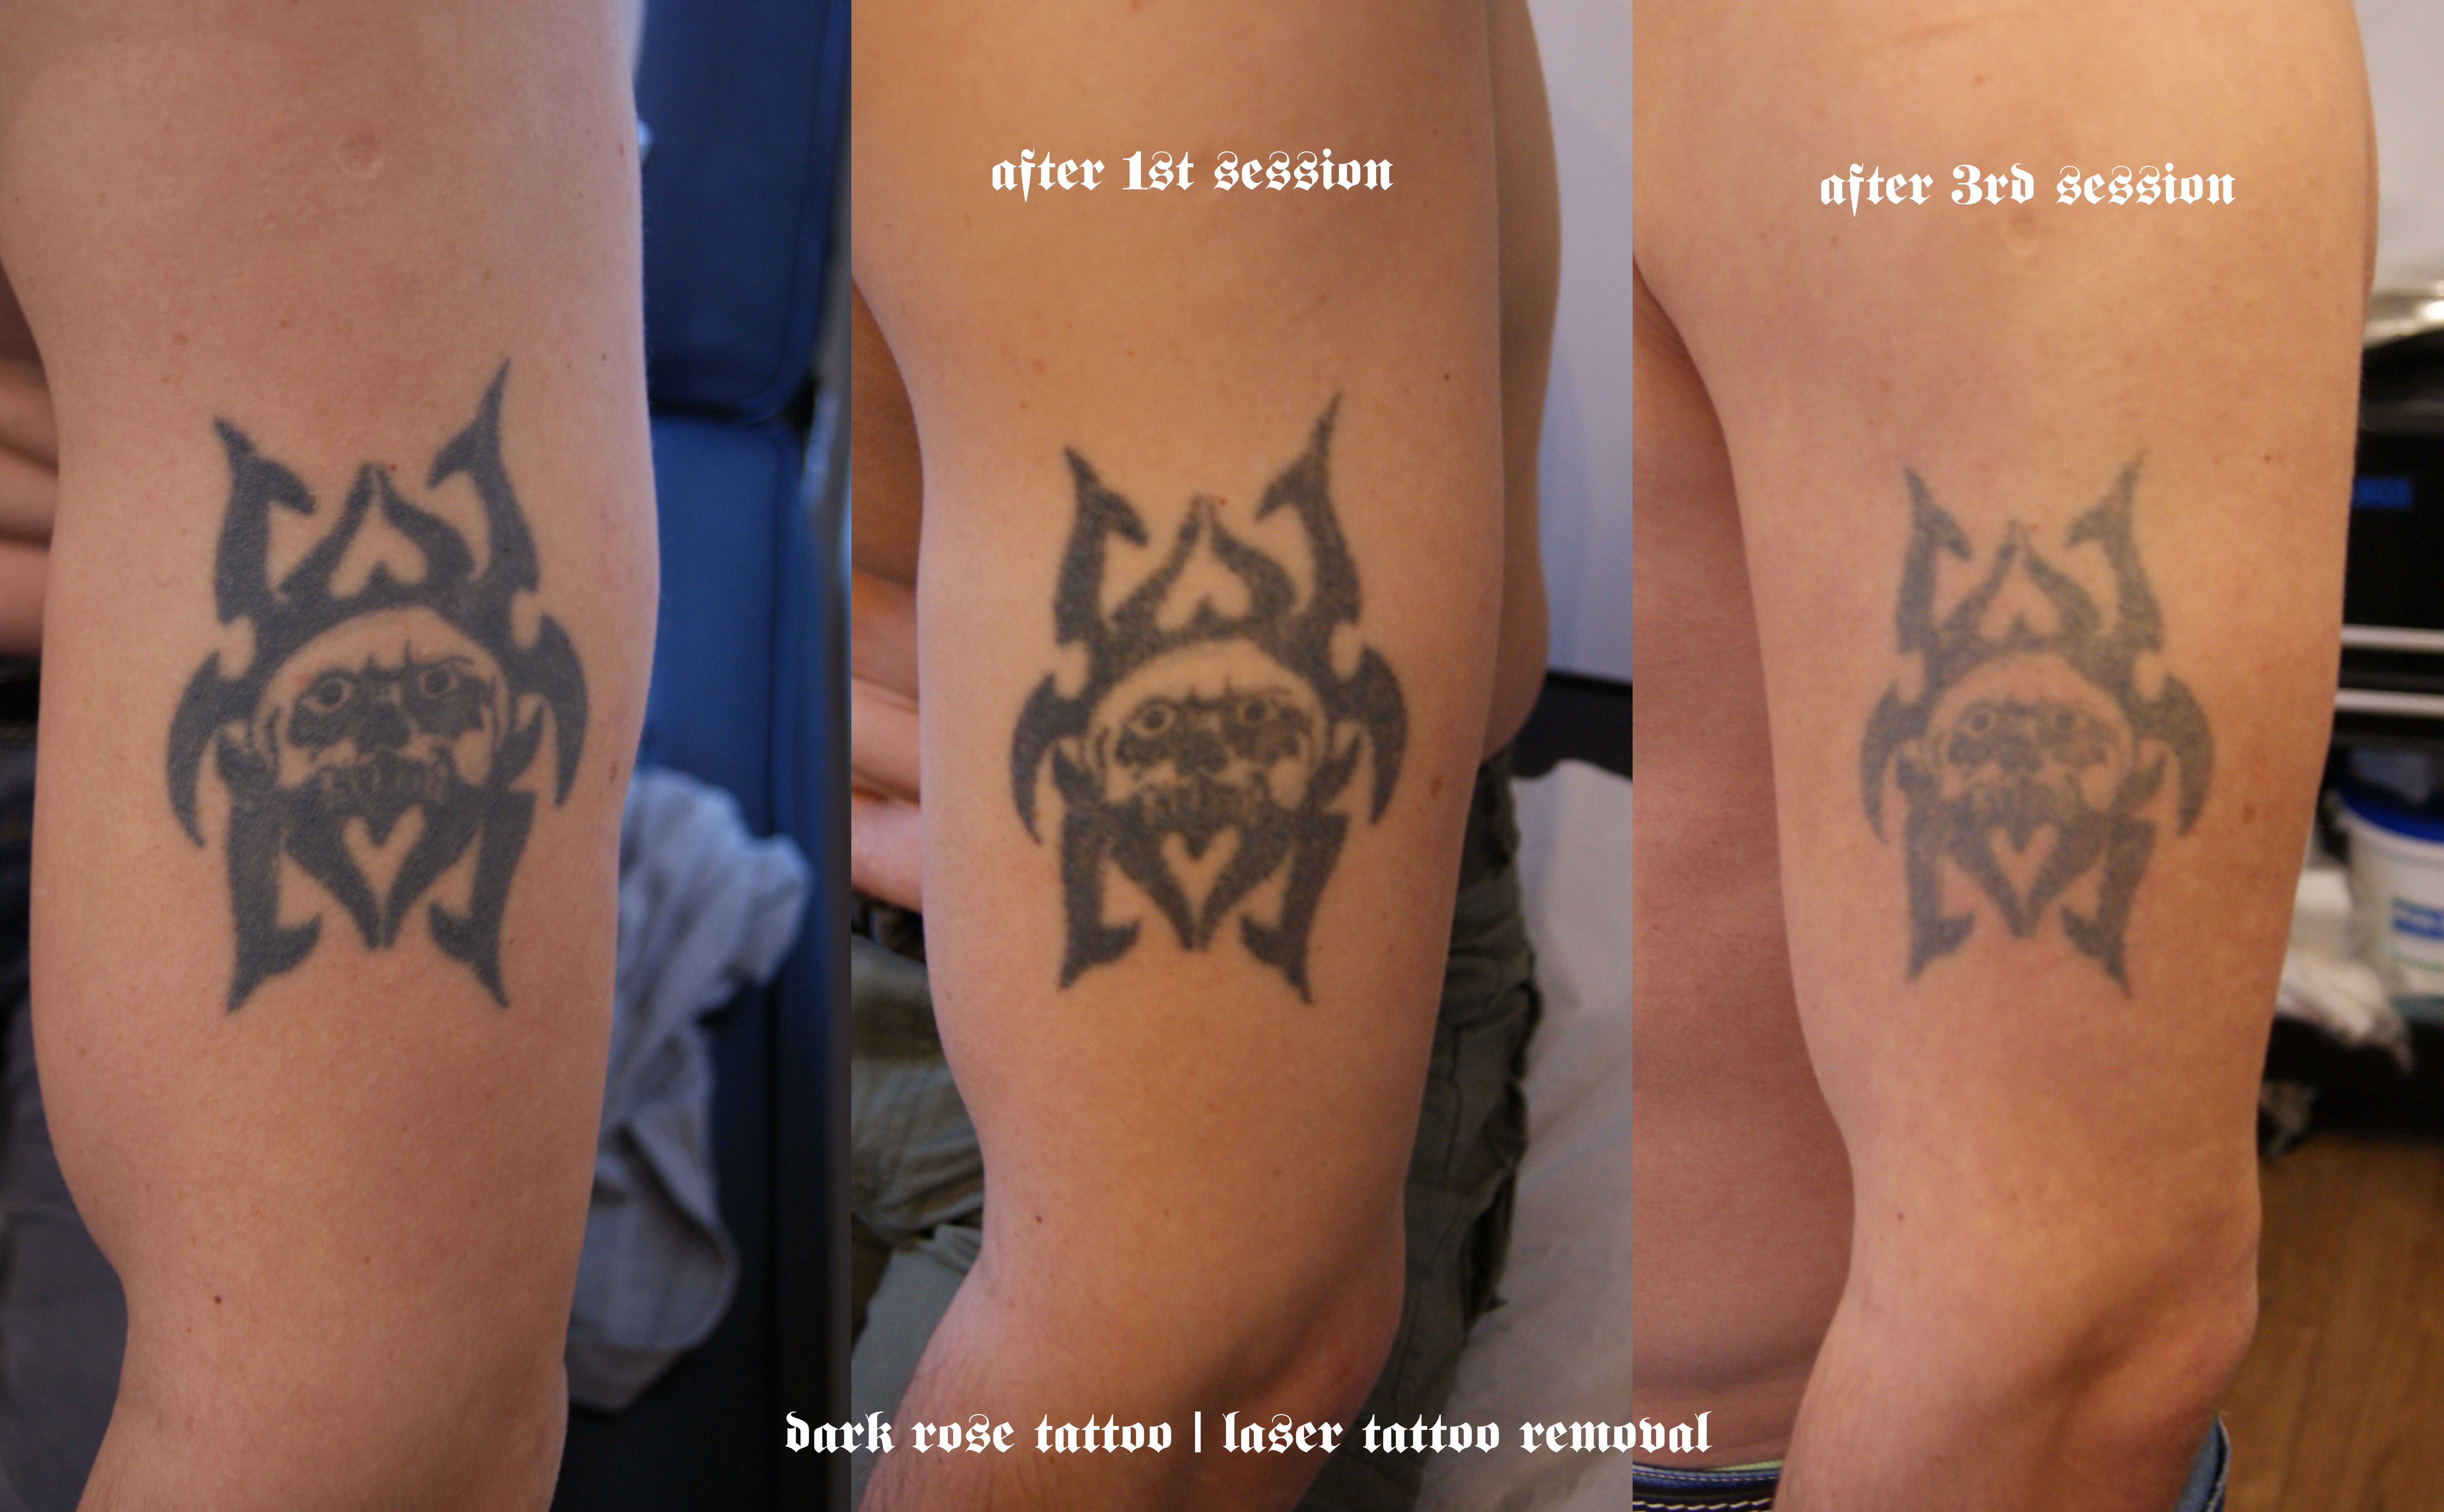 Tattoo and pmu removal with laser dark rose tattoo for How long is a tattoo removal session